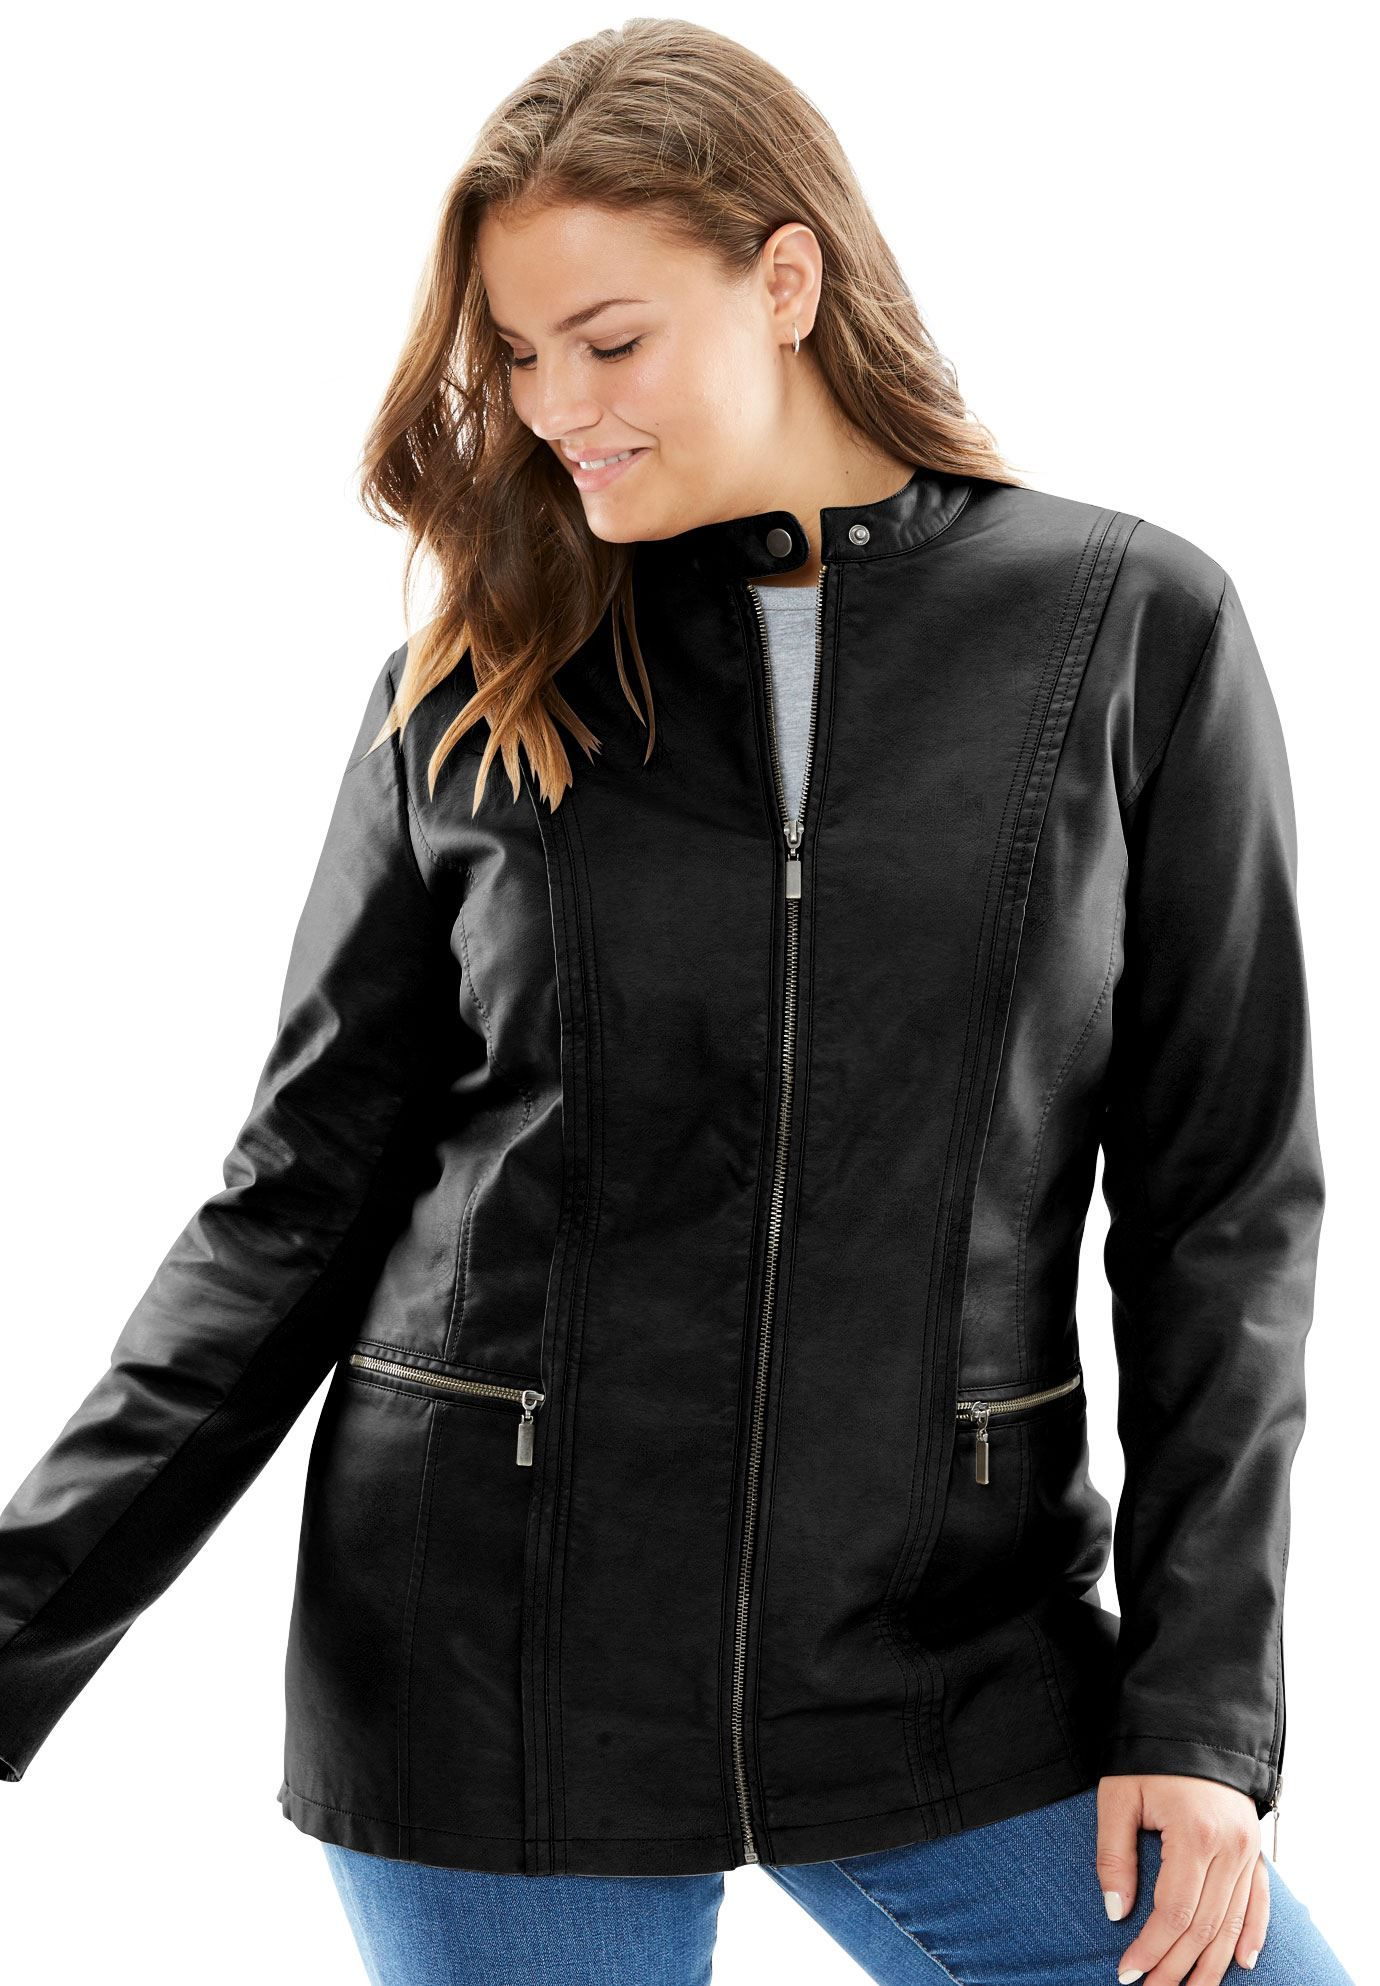 1314fc5af84 Faux Leather Moto Jacket - Women s Plus Size Clothing